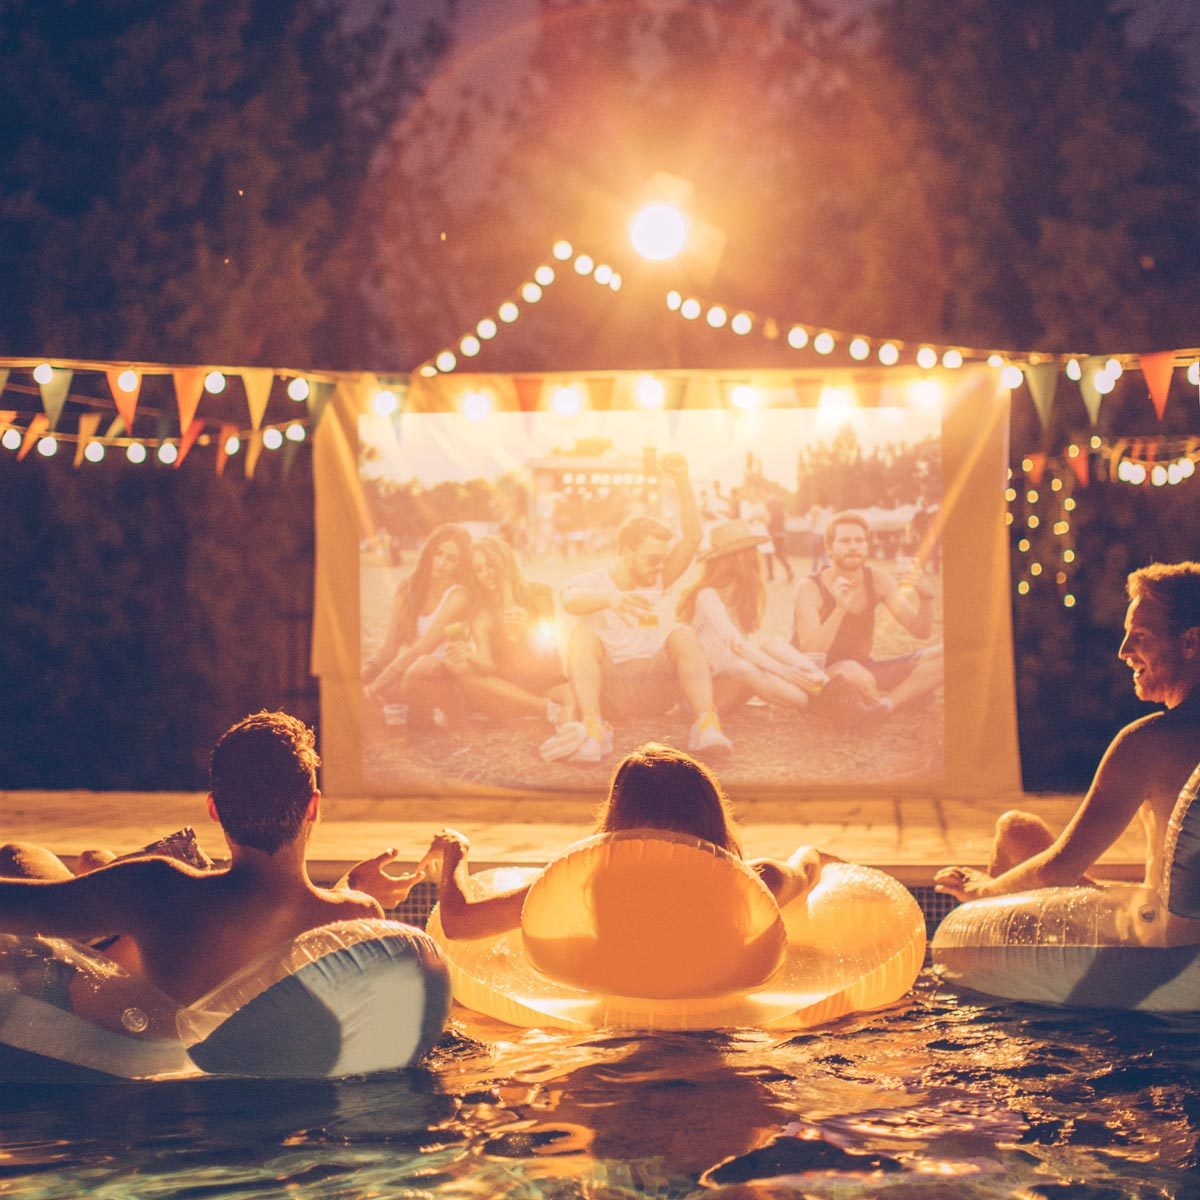 Pool movie night party Gettyimages 511598518 Movie